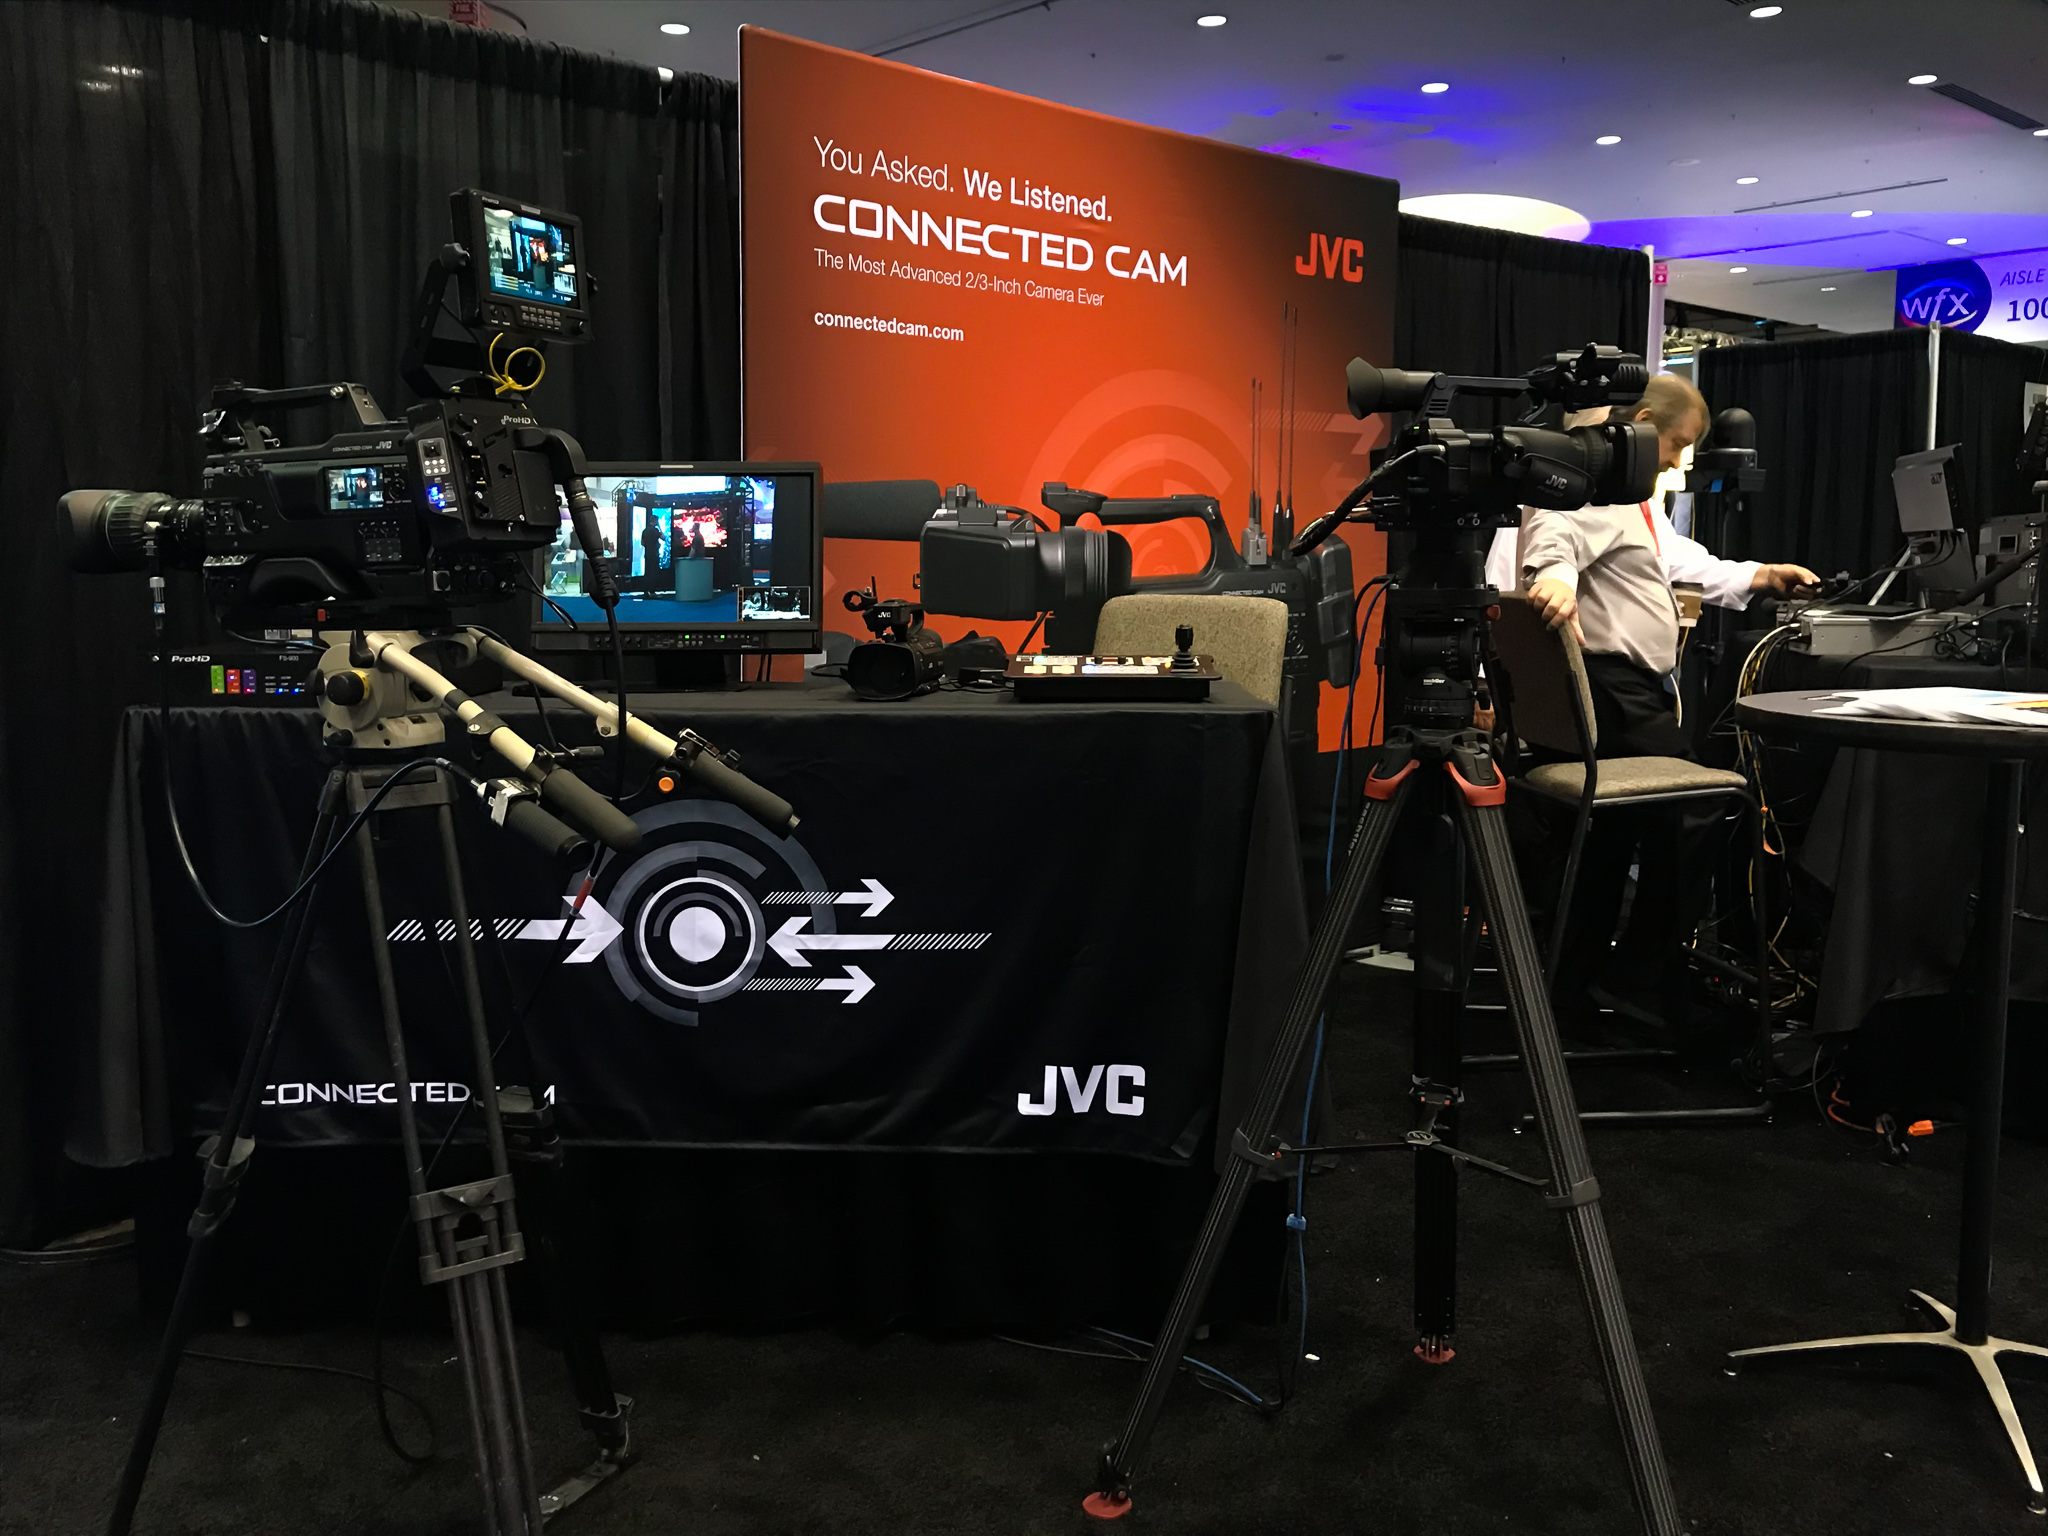 JVC is a company that sells different types of media equipment. Here they displayed some of their newest cameras to entice video team members.